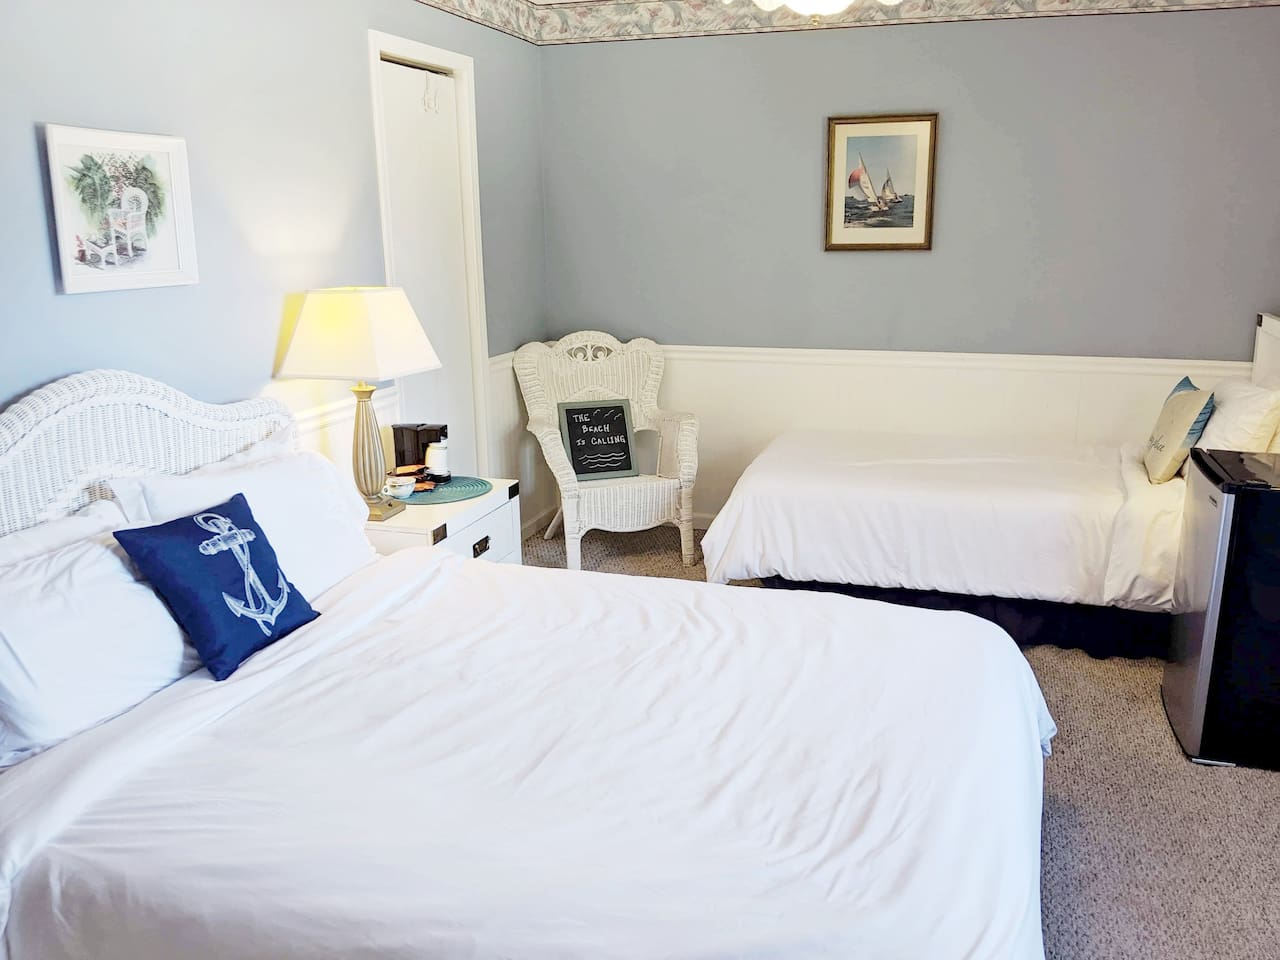 Your private room includes a queen & twin bed, minifridge, Smart TV with Hulu, fan, coffee maker, AC/heat, & private bath. Your window has a view of our barn & your car in the parking area.